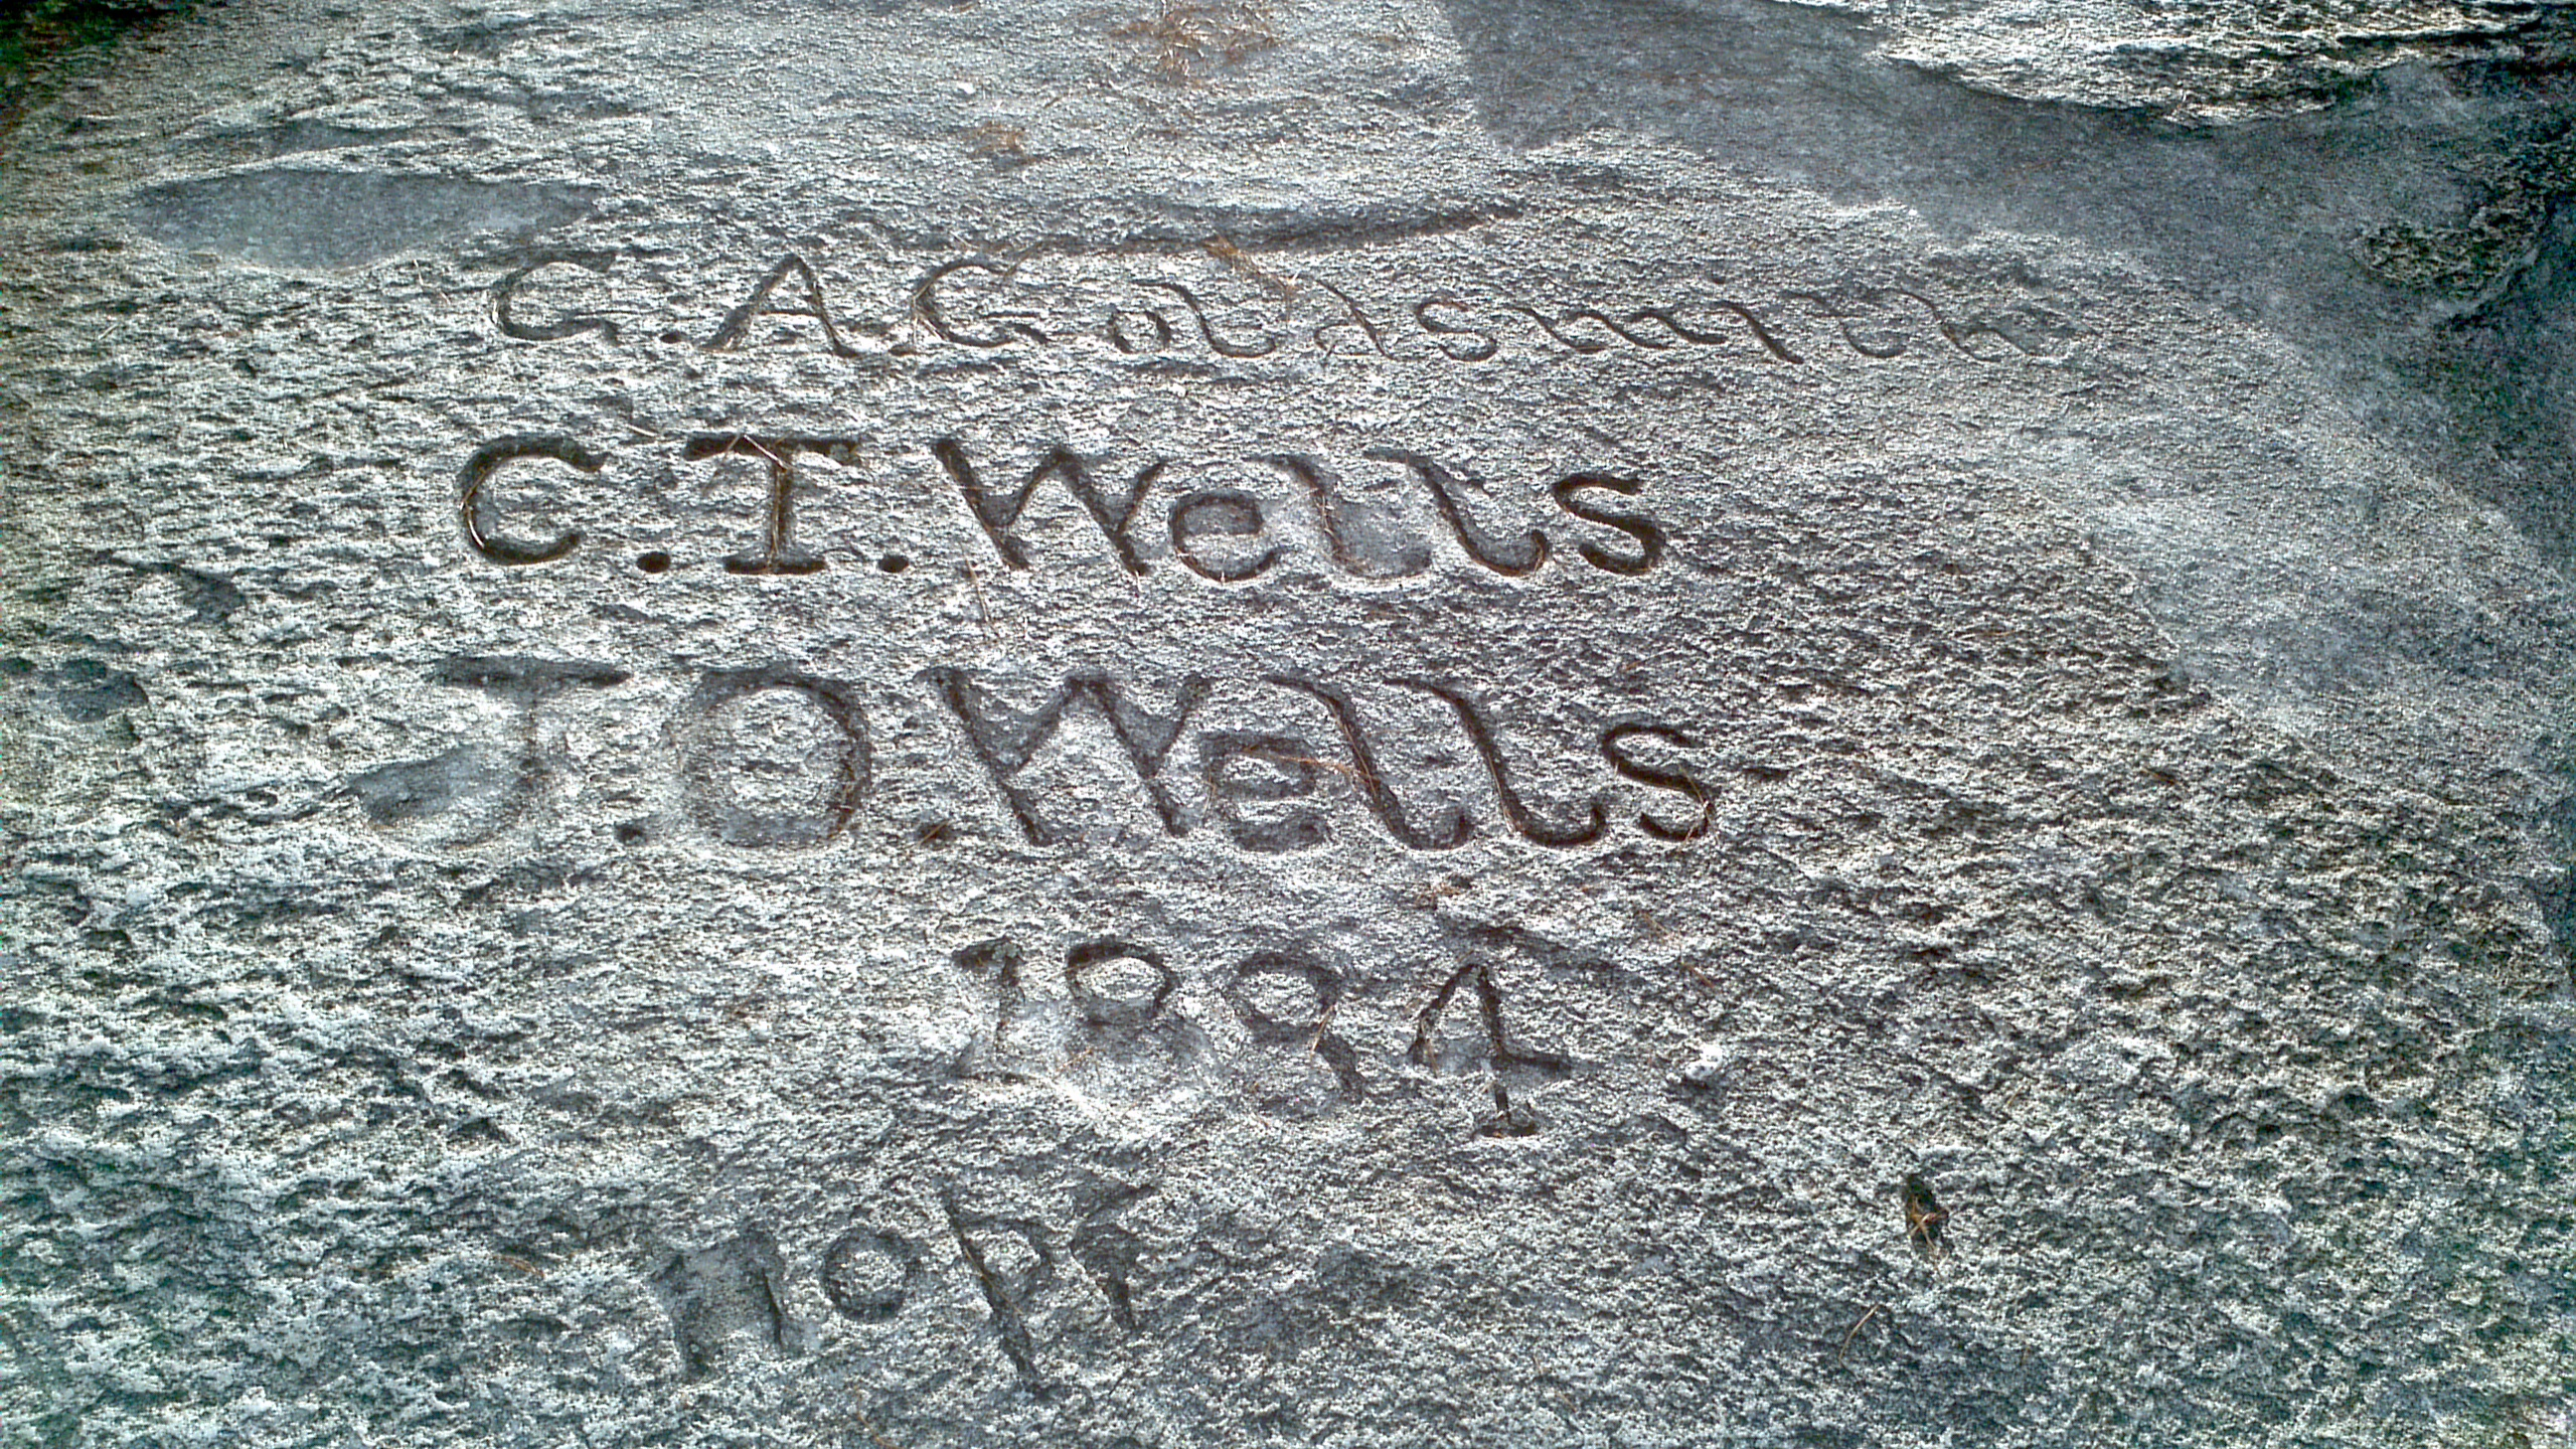 The carvings on stone mountain part raised by wolves